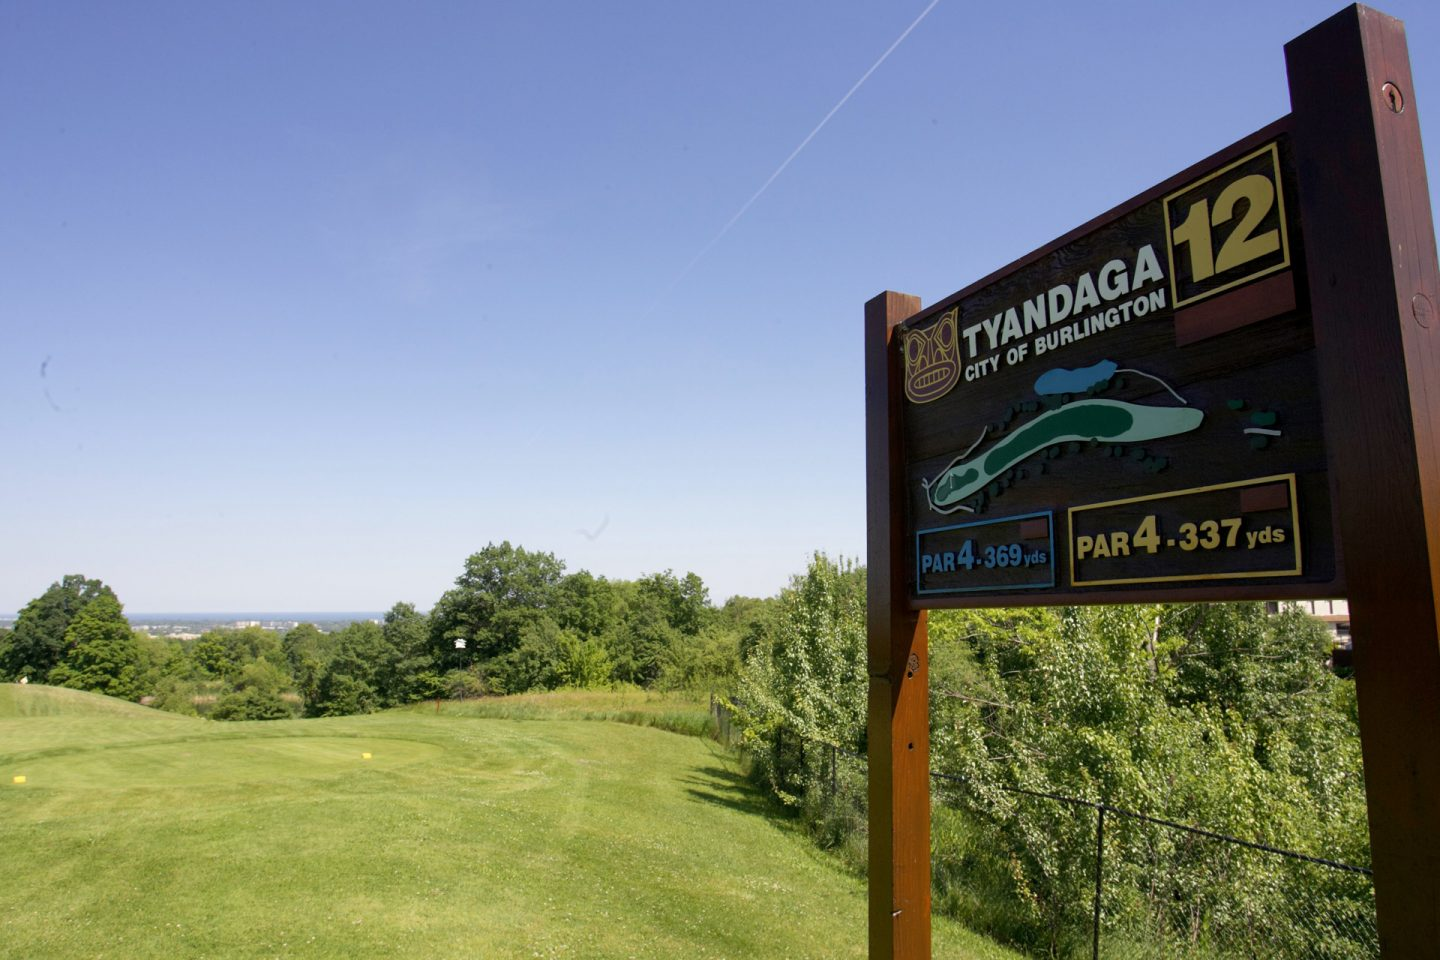 Tyandaga Municipal Golf Course